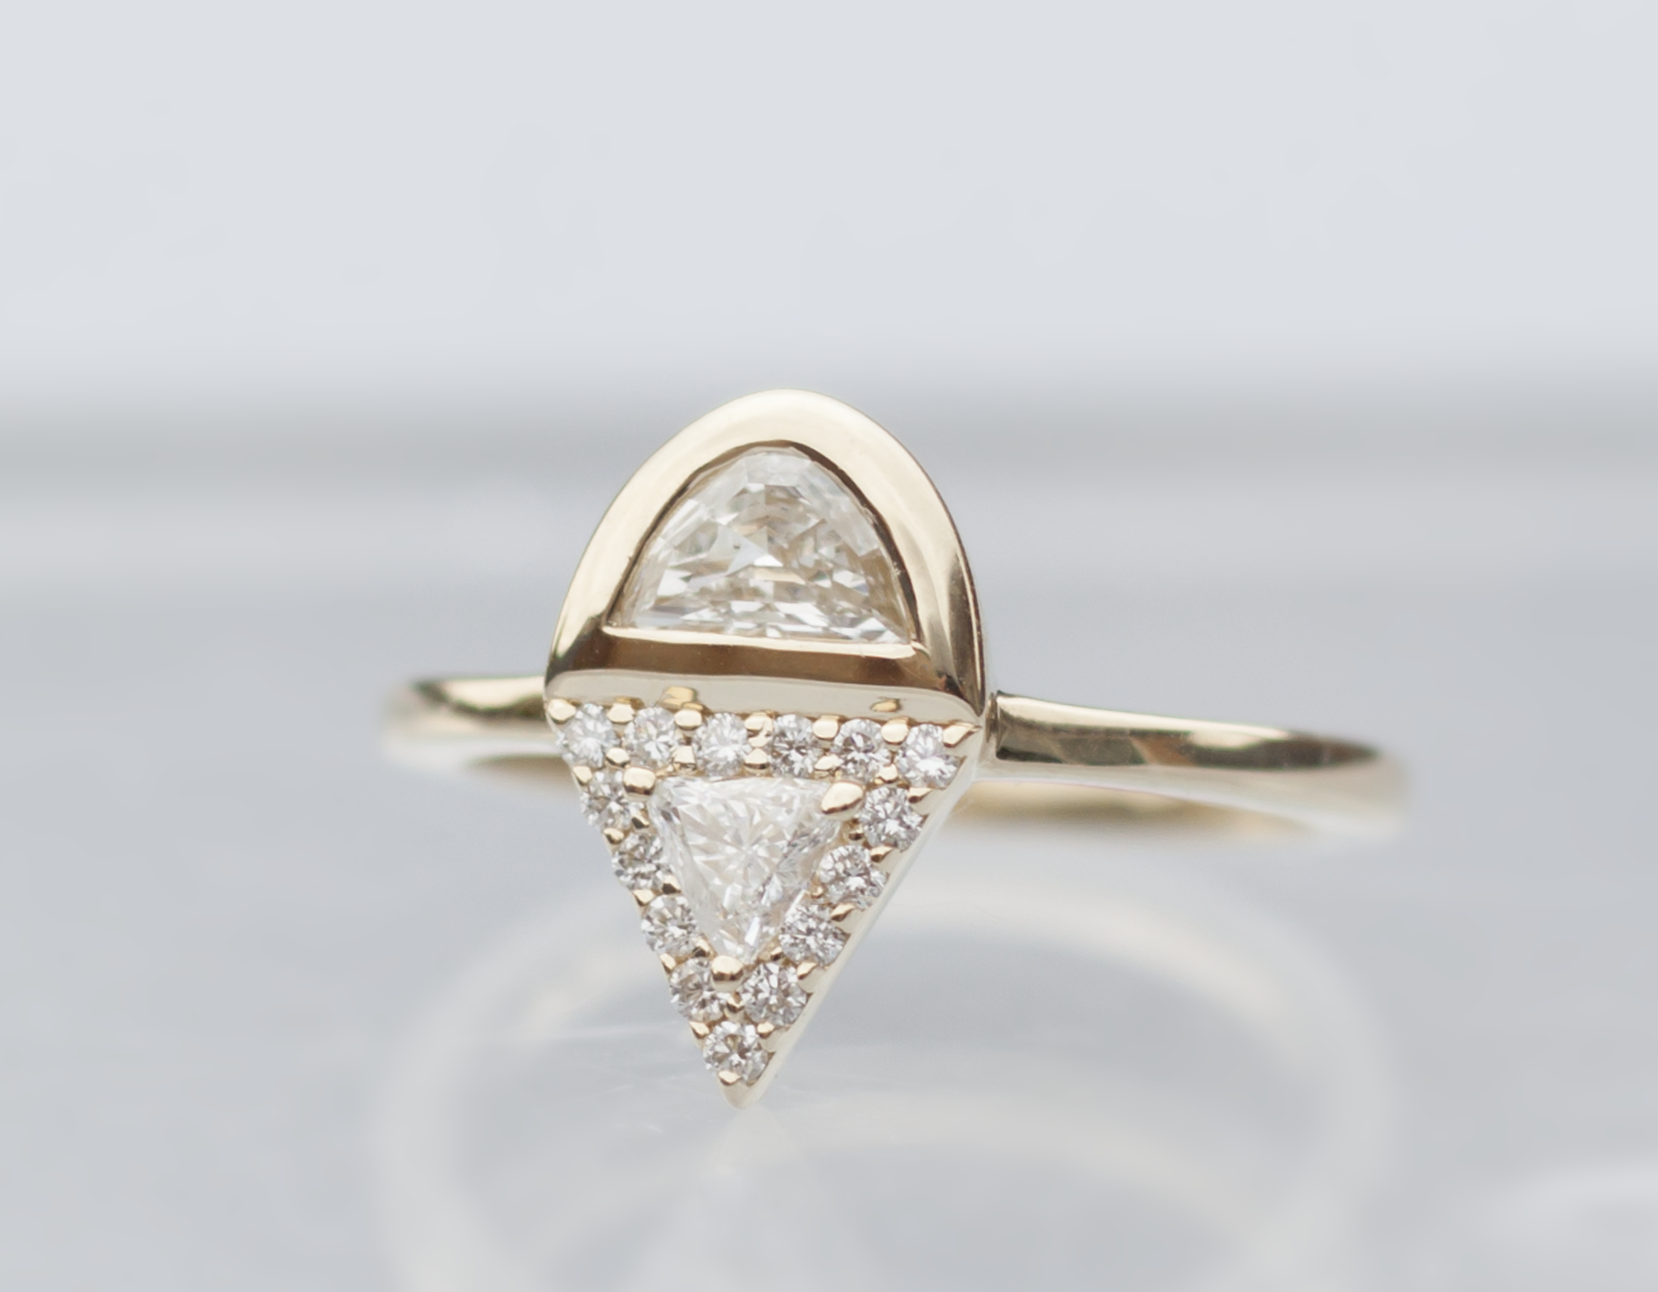 Art Deco Inspired Engagement Ring - Anastassia Sel Jewelry